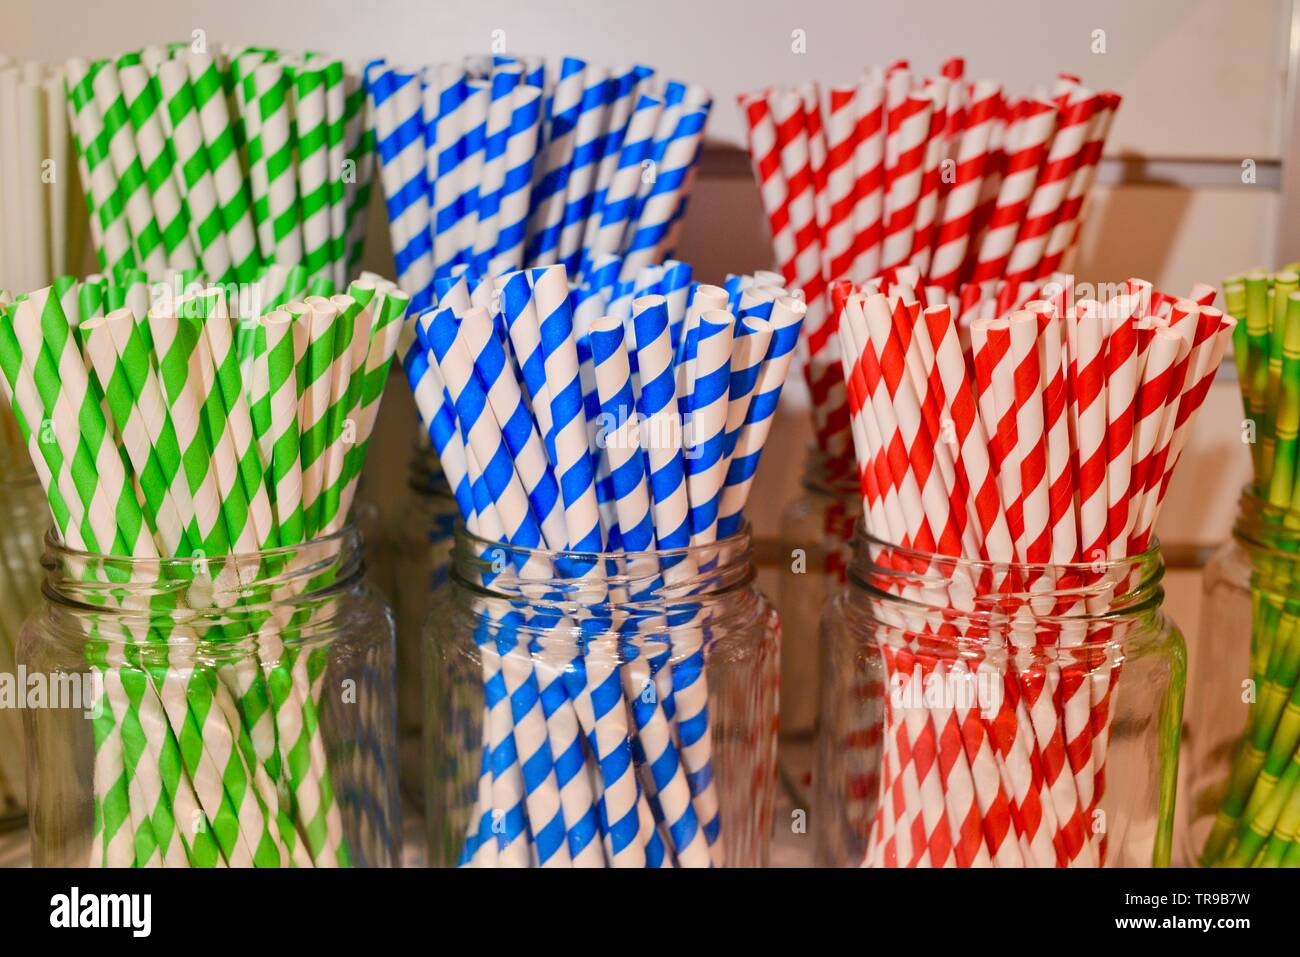 Assorted color striped straws, single use plastic alternative, in jars displayed at booth at National Restaurant Association Show held in Chicago, USA - Stock Image